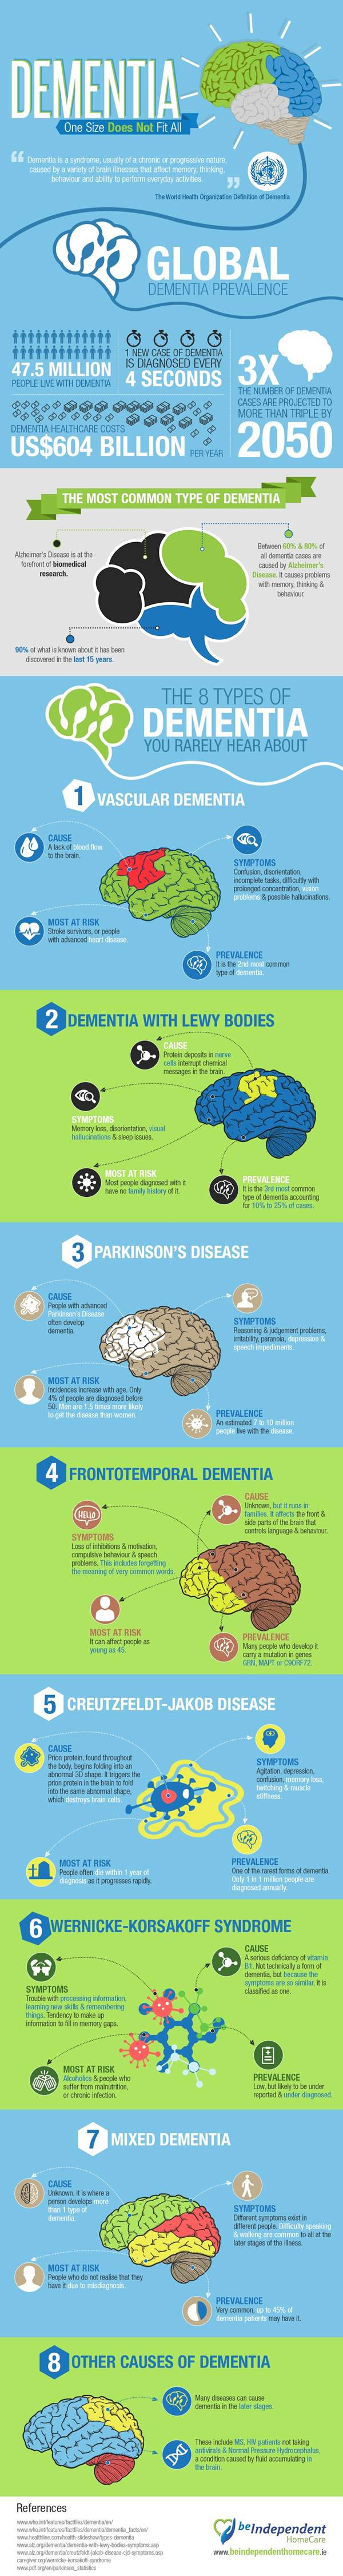 The-Types-of-Dementia-You-Rarely-Hear-About